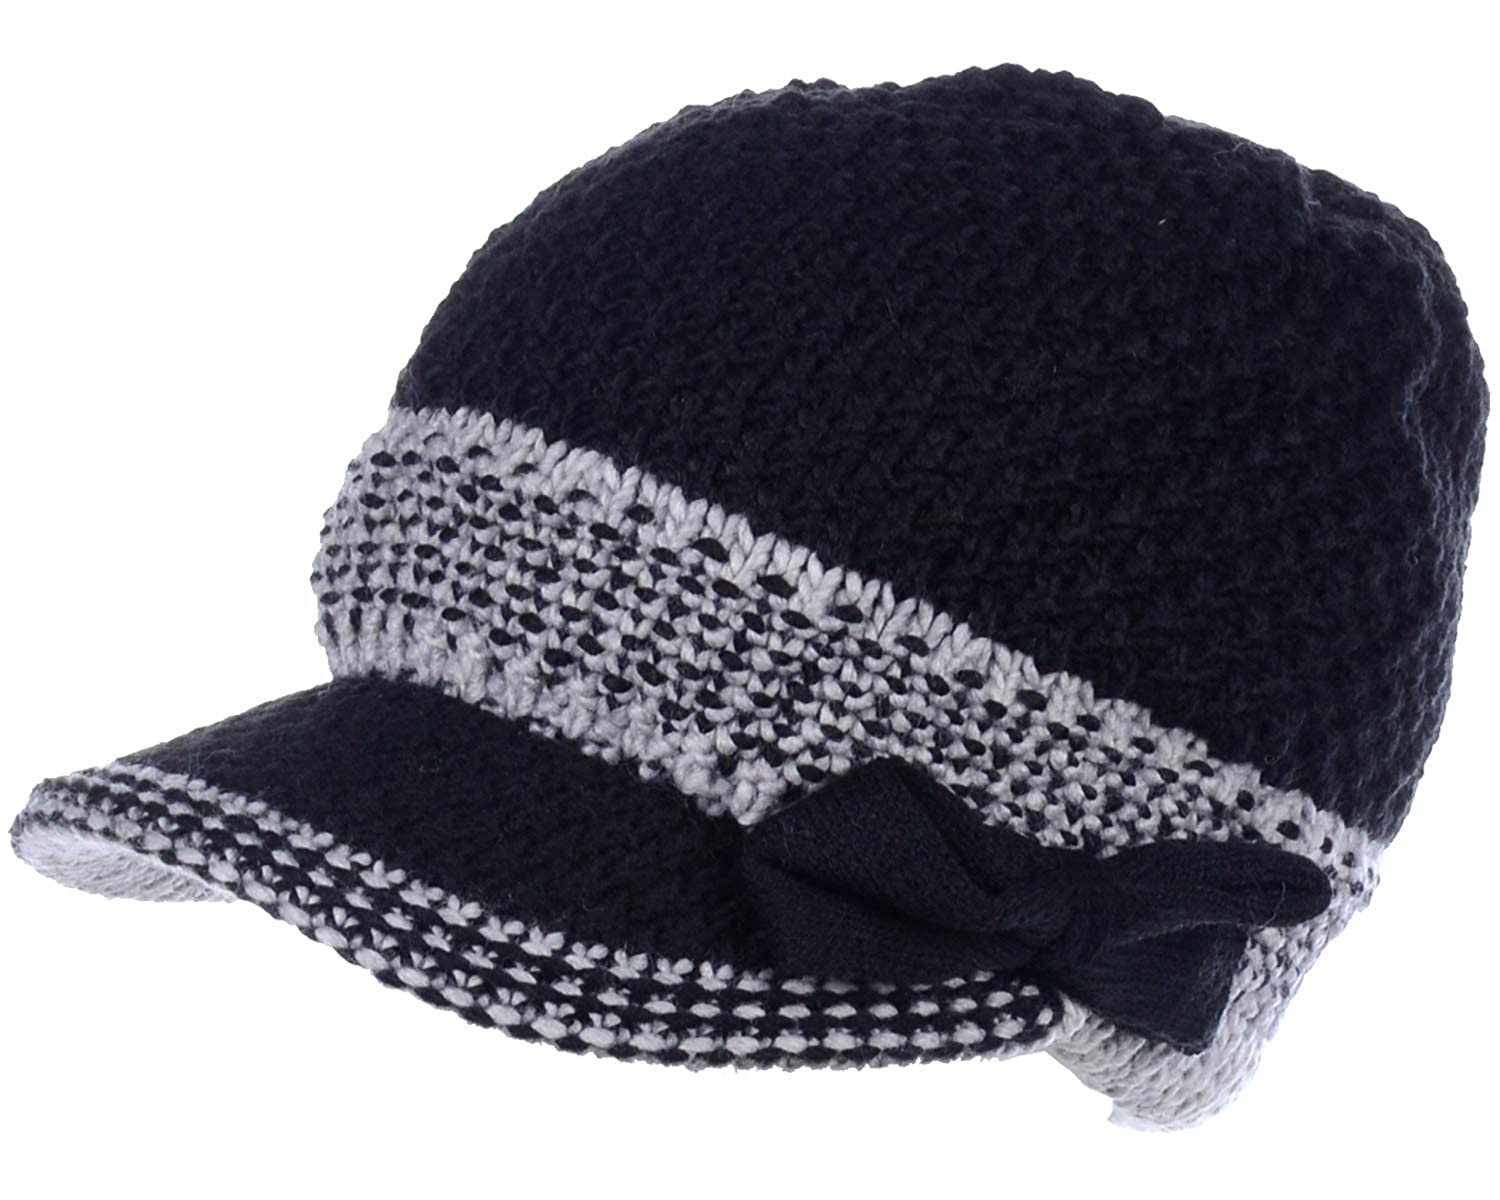 7327d43f0 Be Your Own Style BYOS Womens Winter Chic Cable Warm Fleece Lined Crochet  Knit Hat W/Visor Newsboy Cabbie Cap